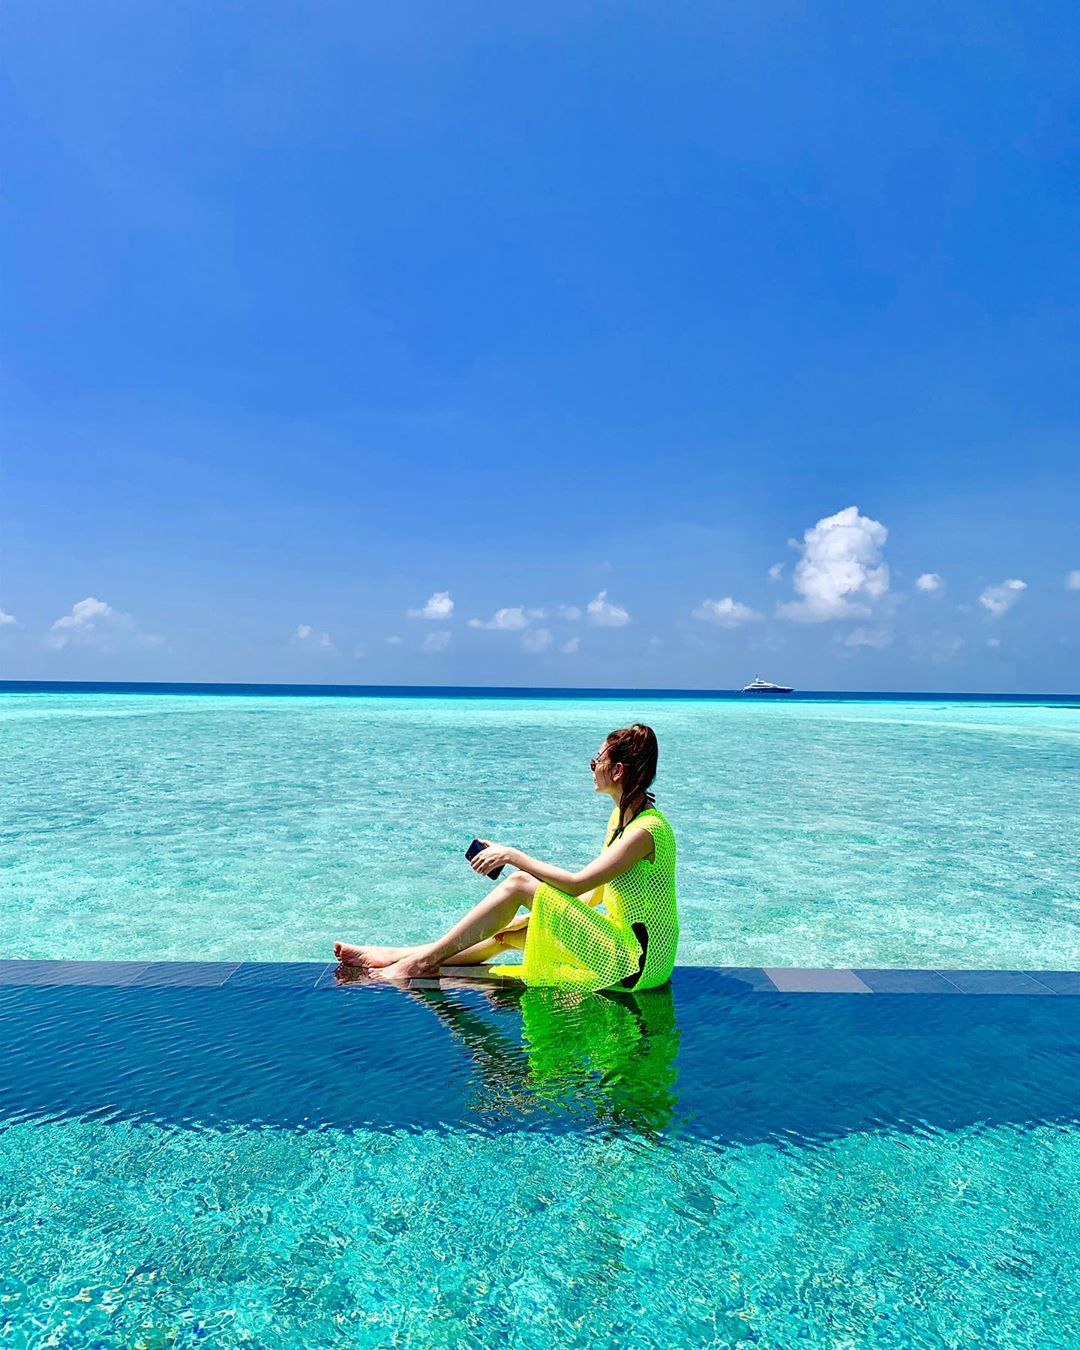 Blue Water & Beach - Model Abeer Rizvi Awesome Clicks from Maldives